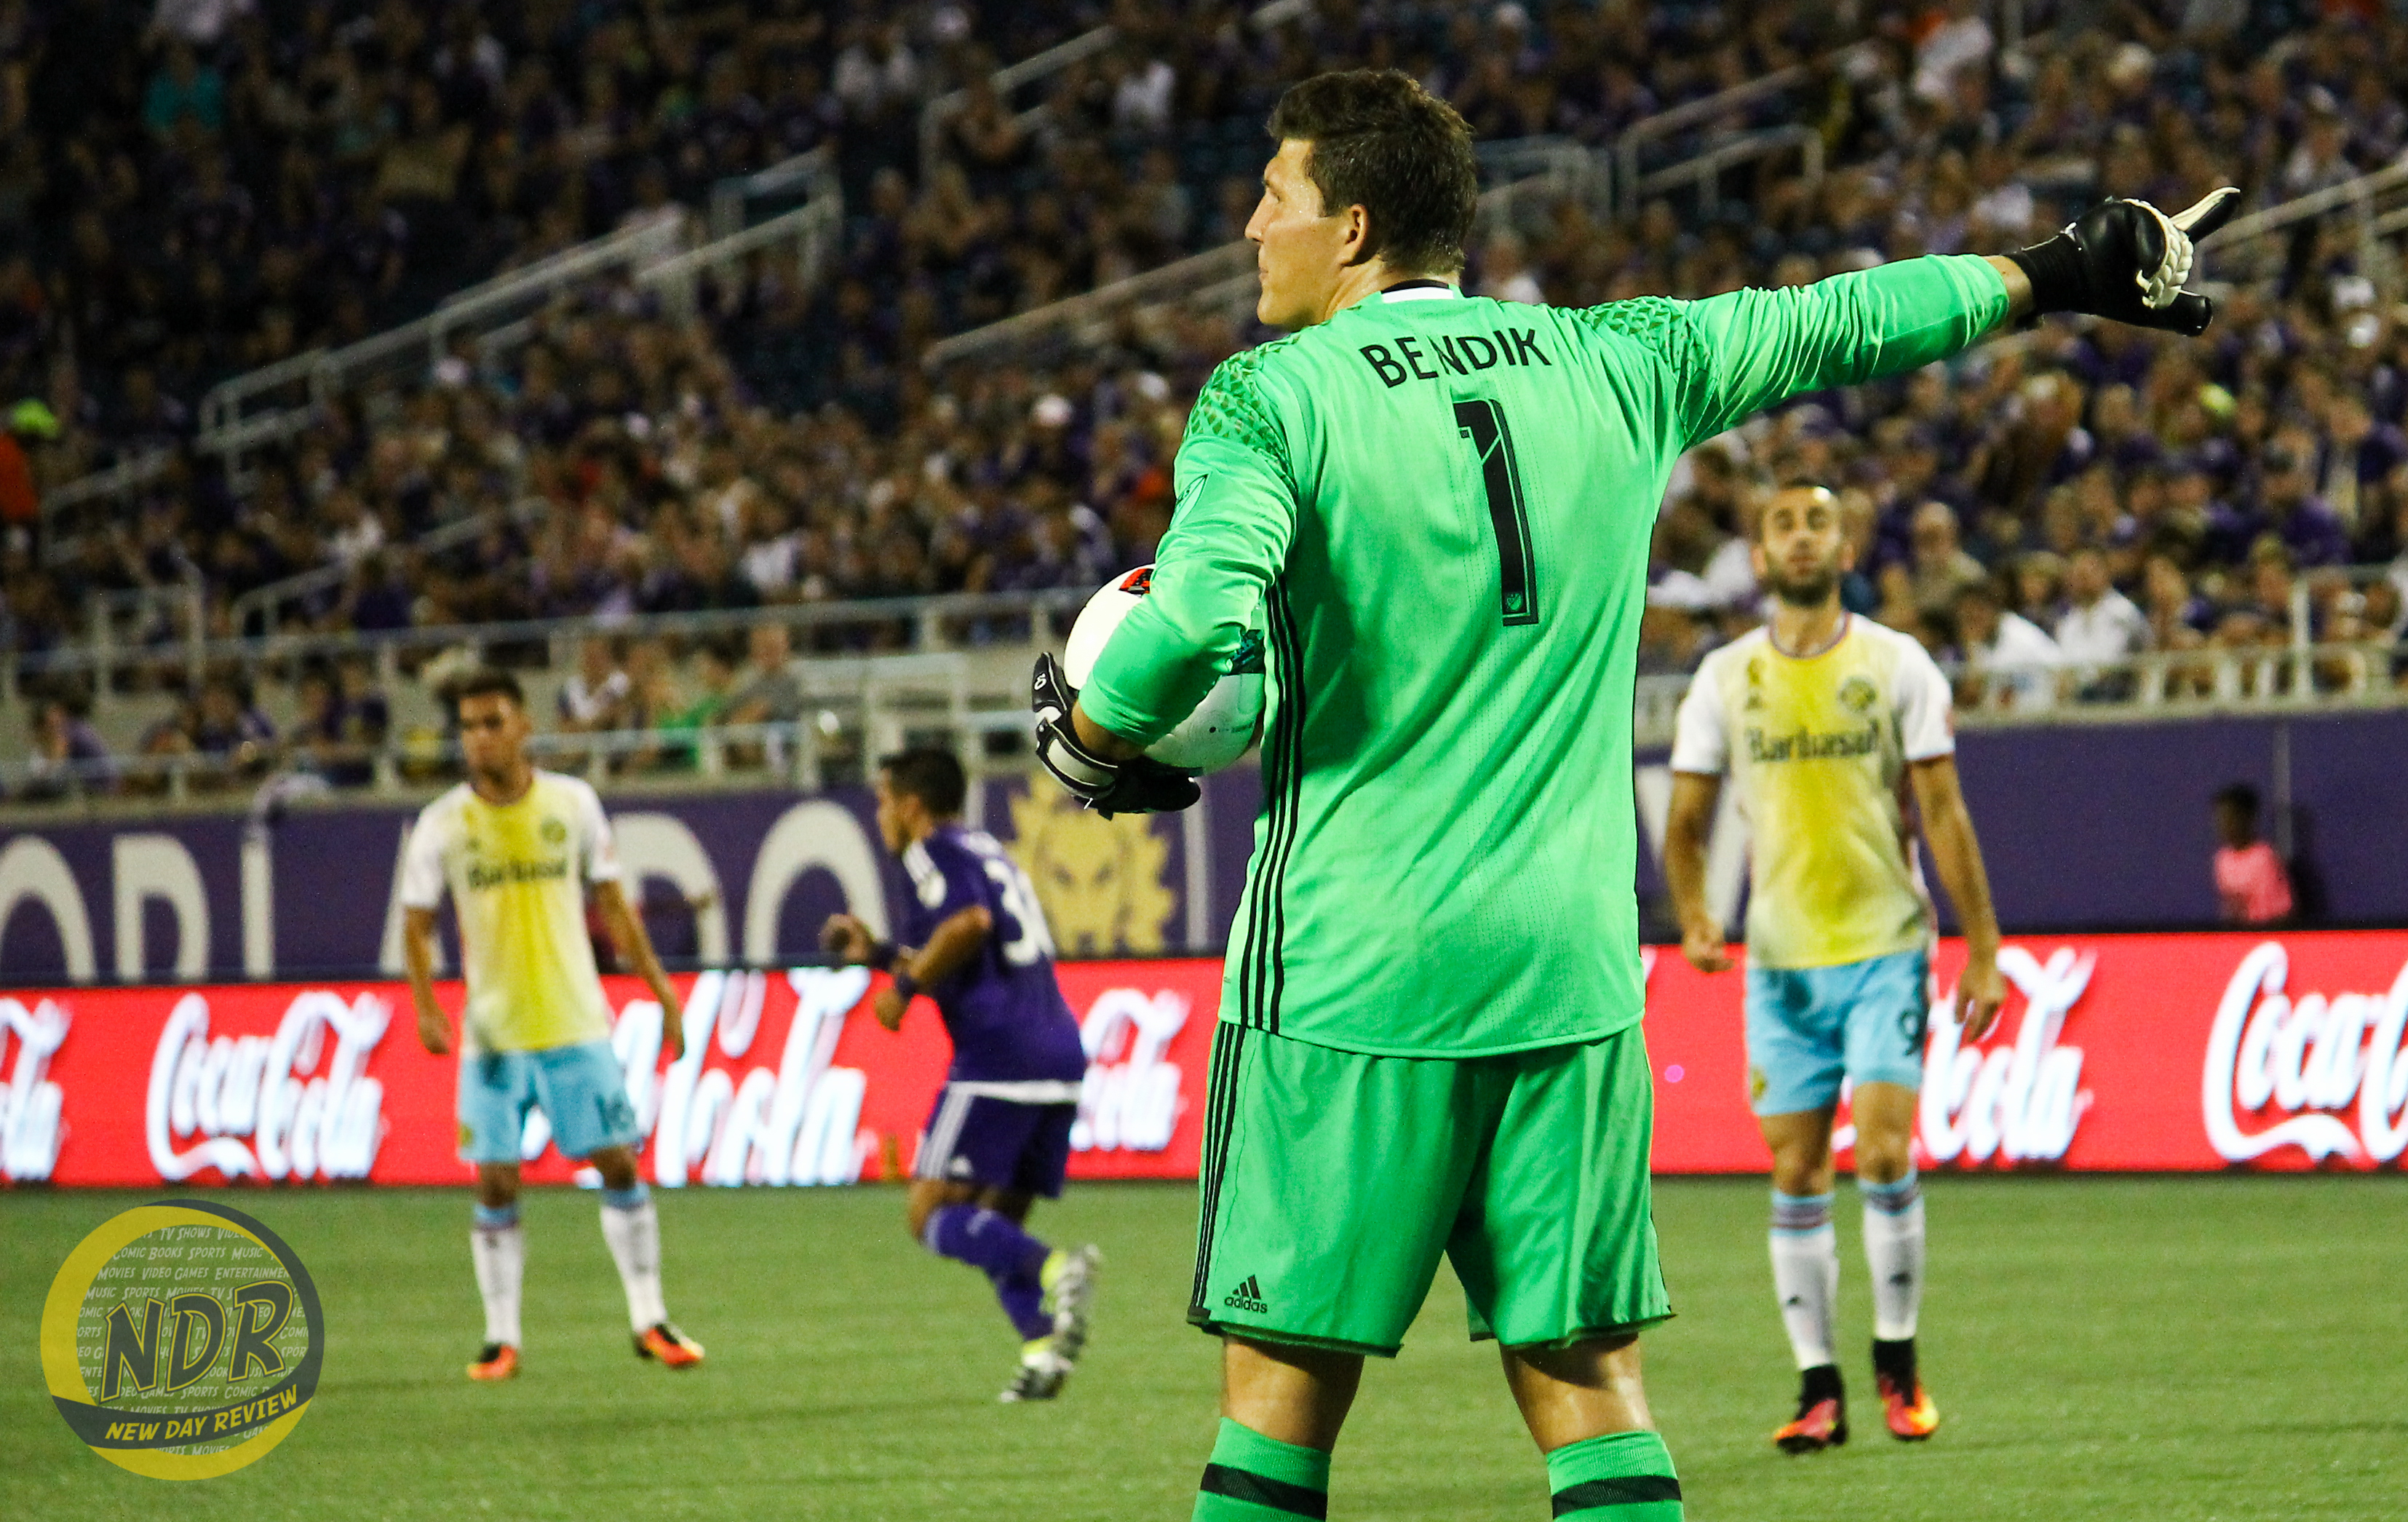 Joe Bendik 1